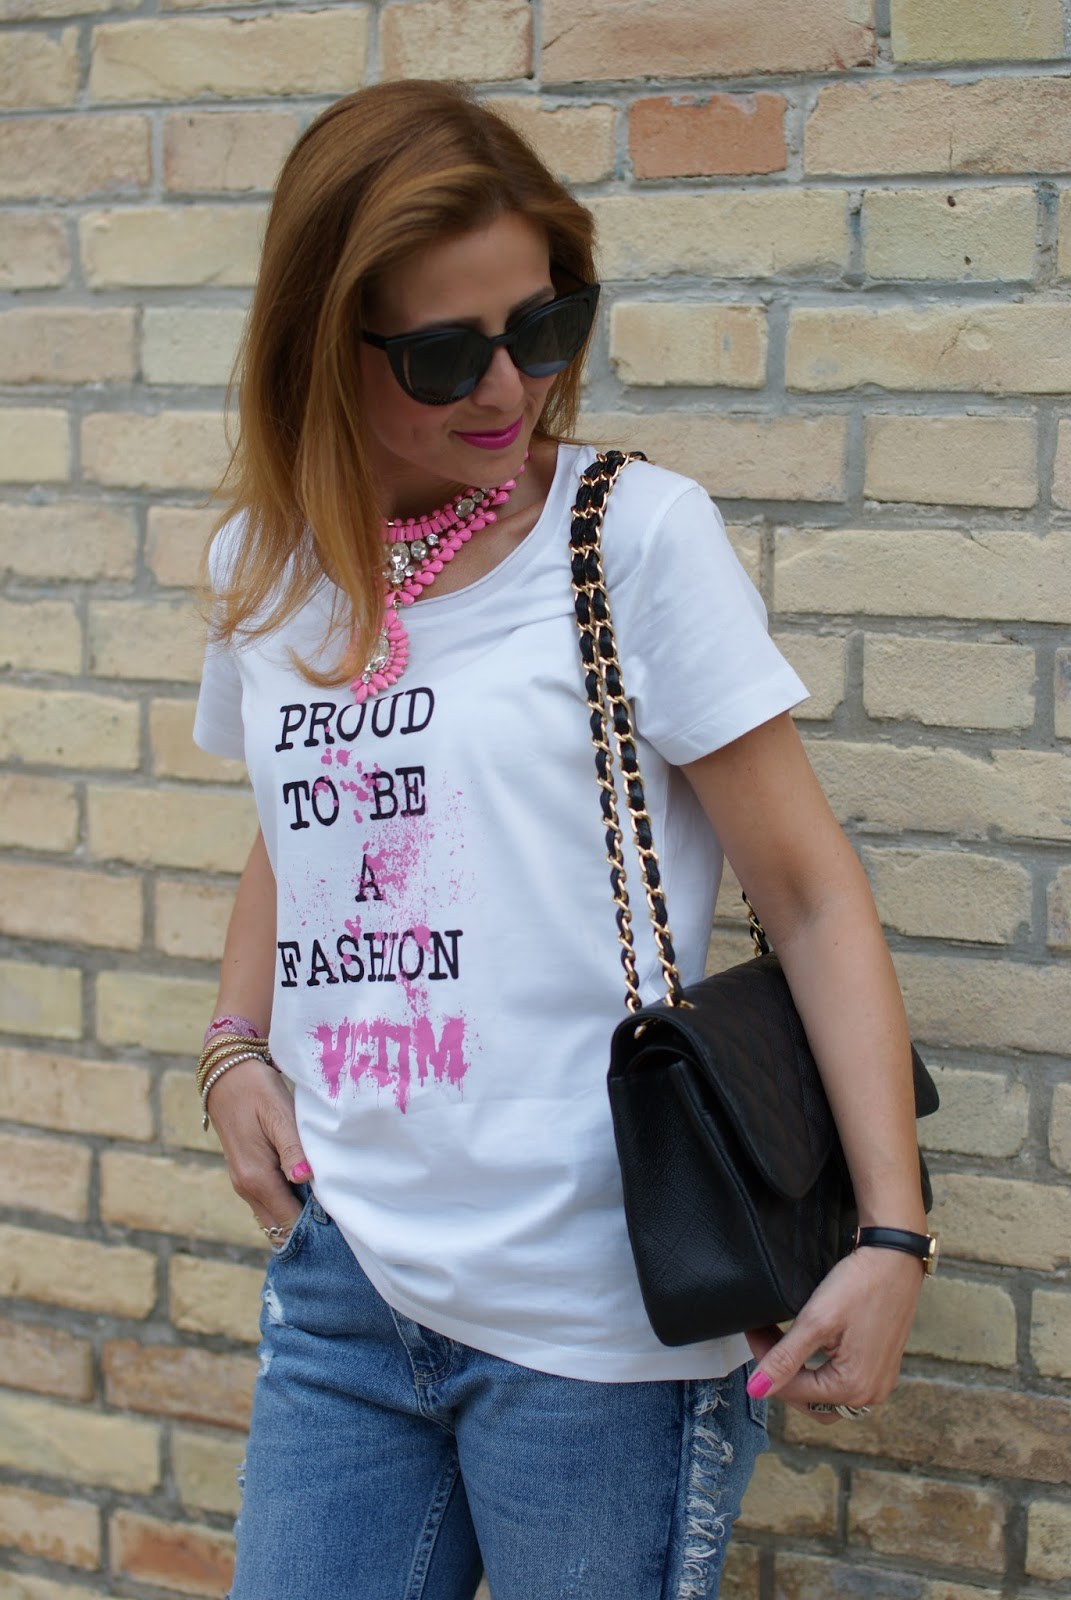 T-shirt TSoF CREW rosa e borsa Chanel 2.55 on Fashion and Cookies fashion blog, fashion blogger style